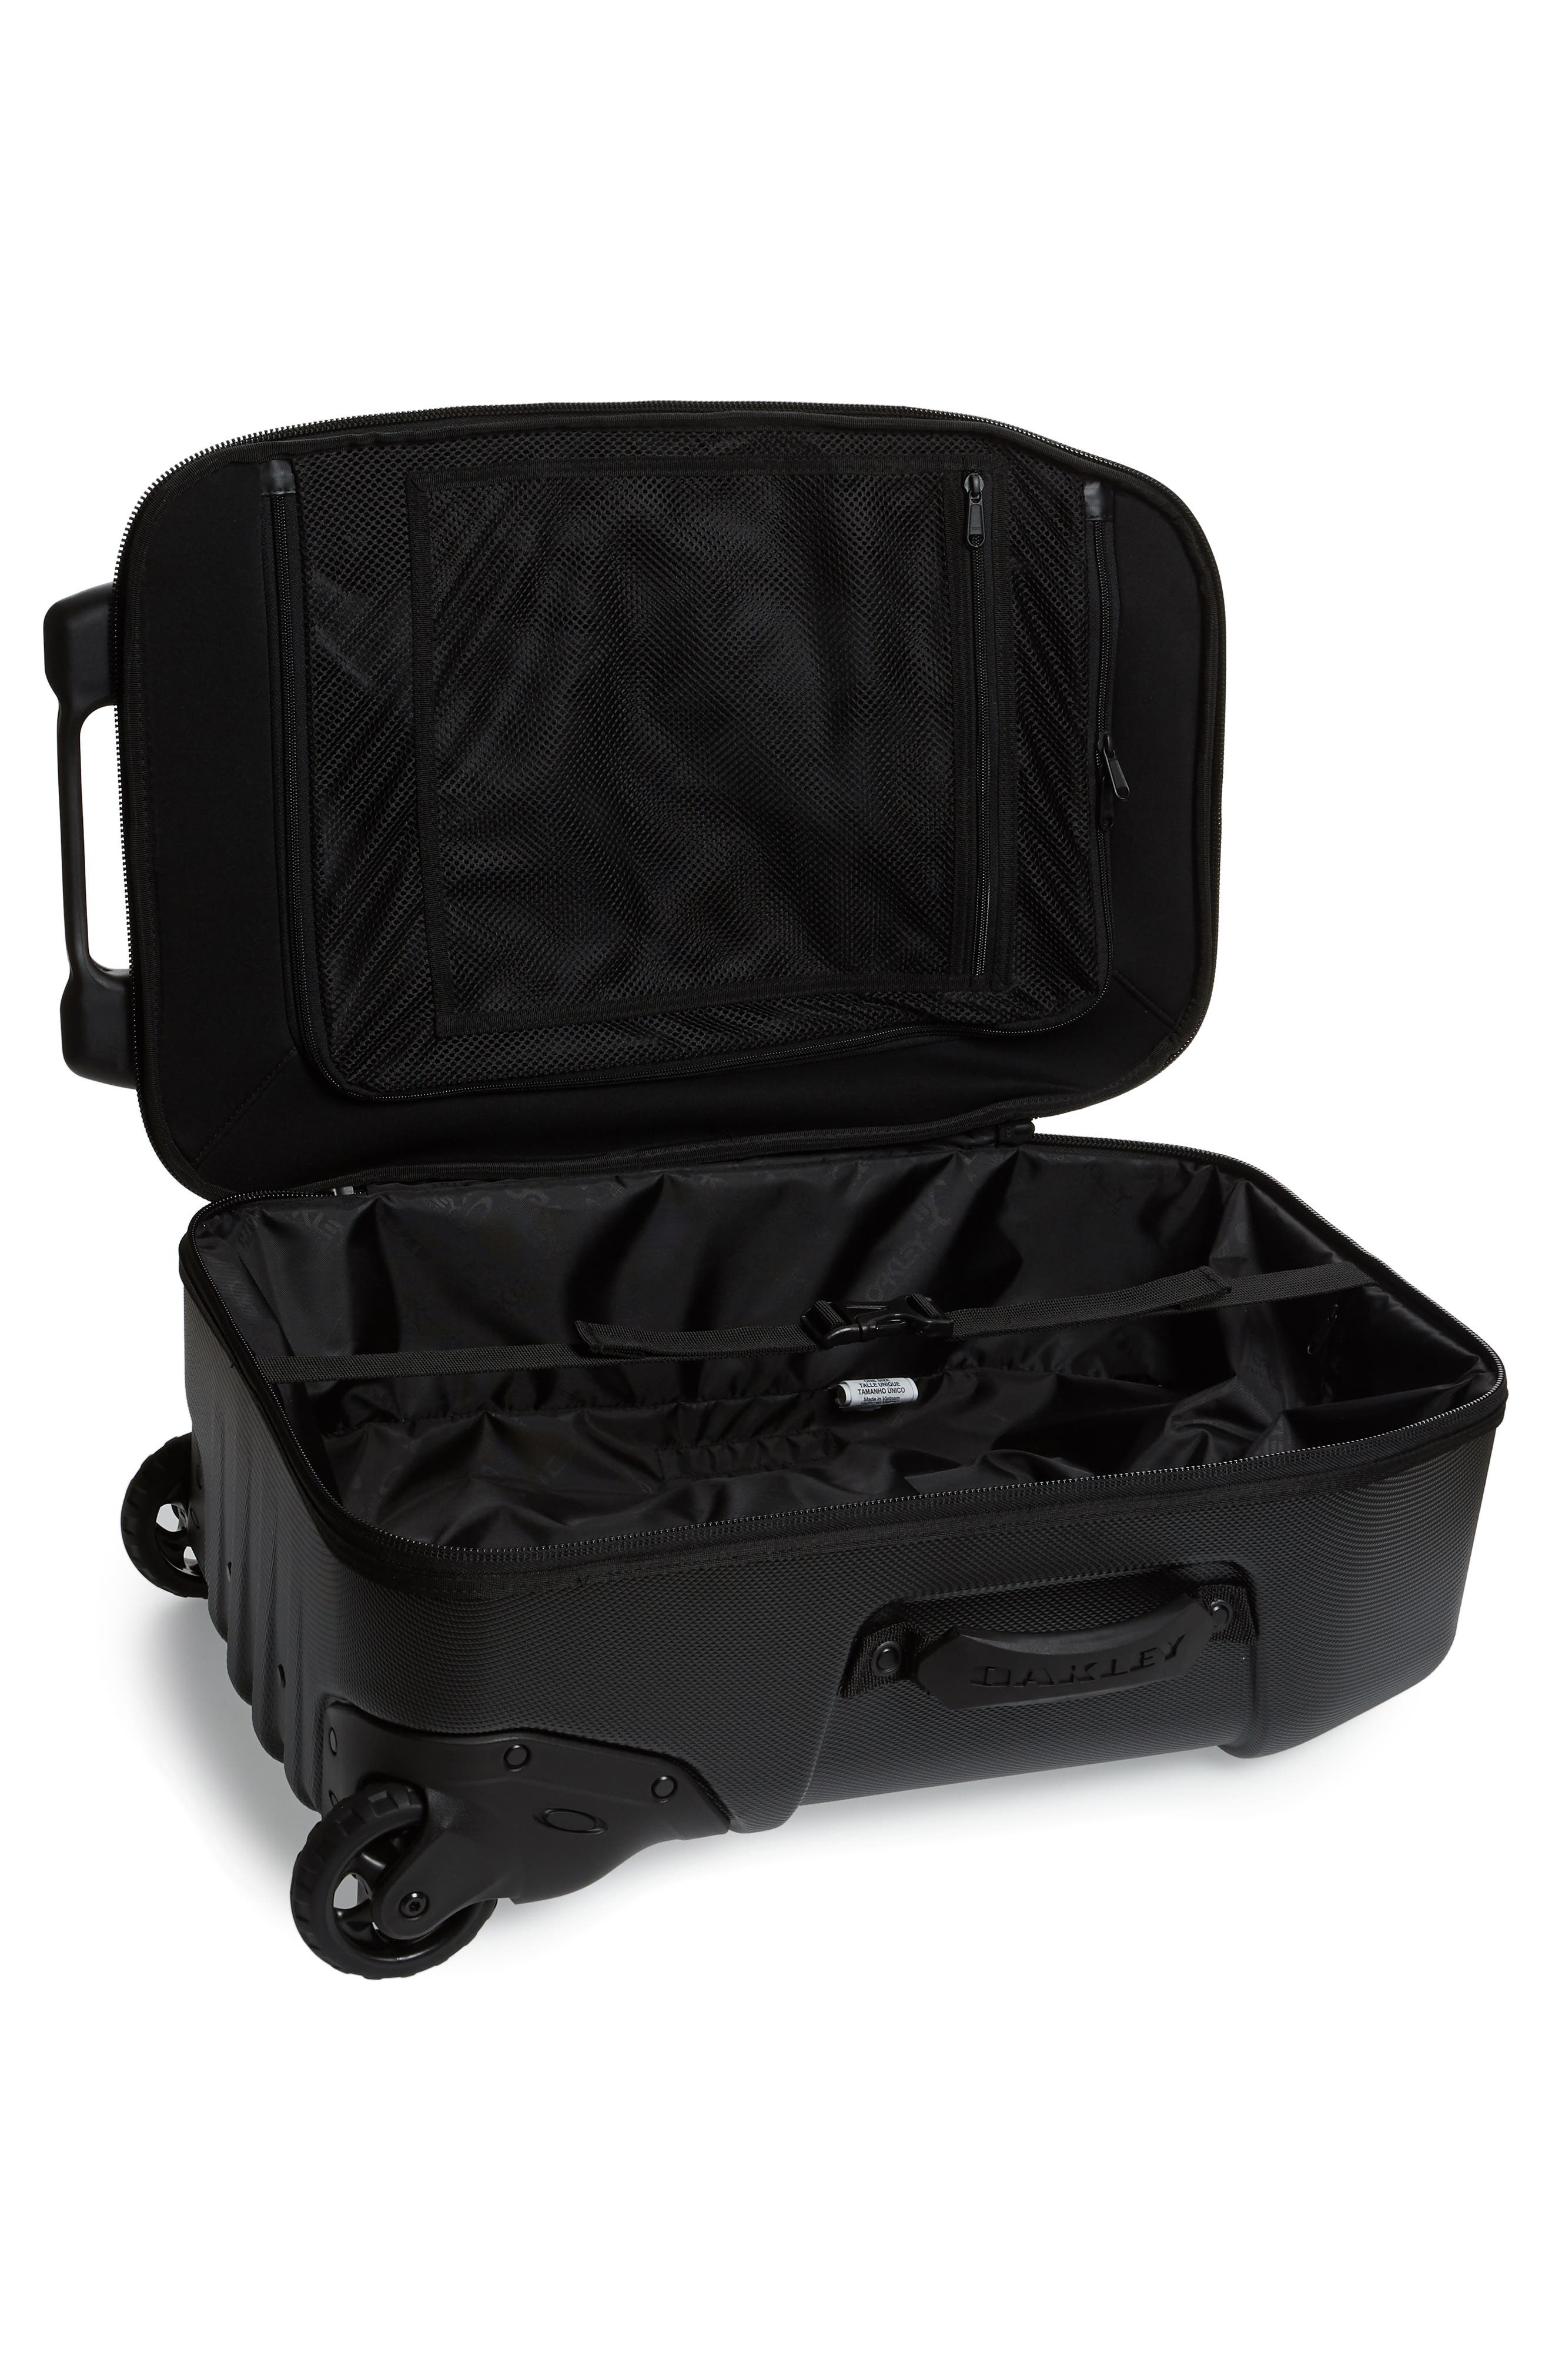 OAKLEY,                             FP 45L Rolling Duffel Carry-On,                             Alternate thumbnail 2, color,                             001